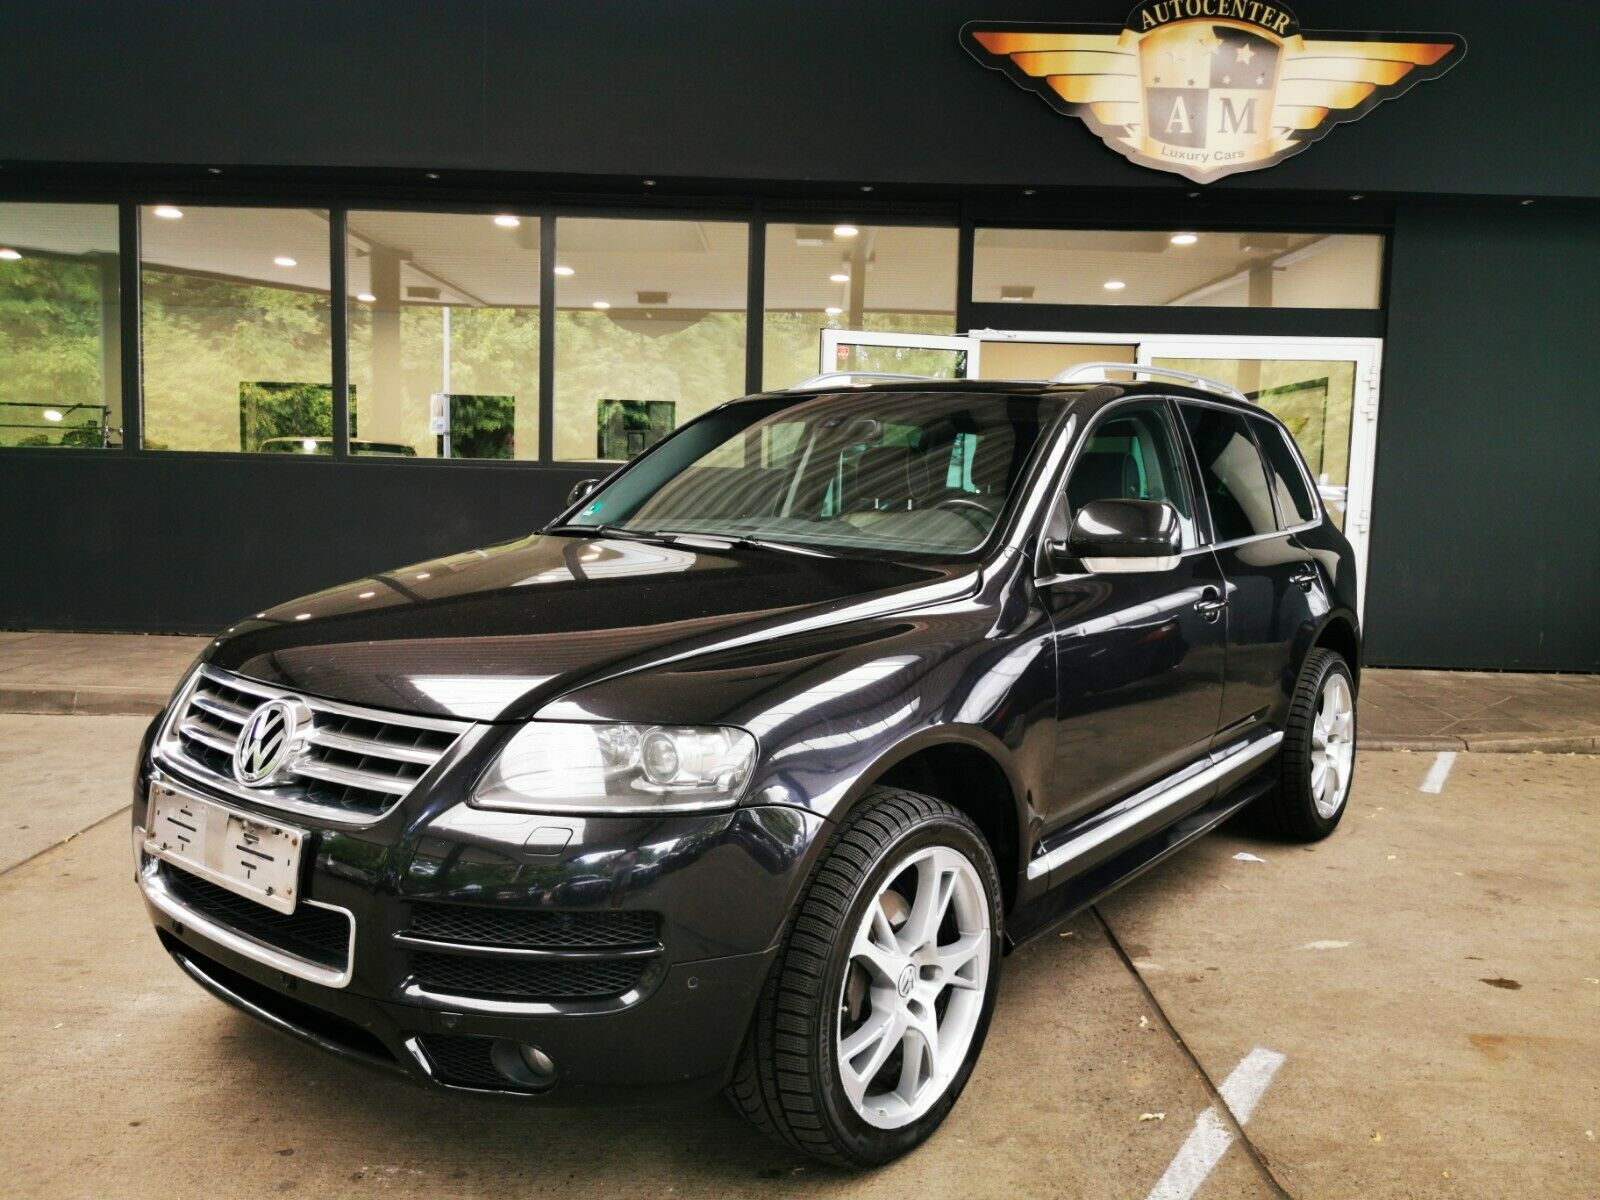 VW Touareg V6 TDI Exclusive Edition 219/ATM 63600km